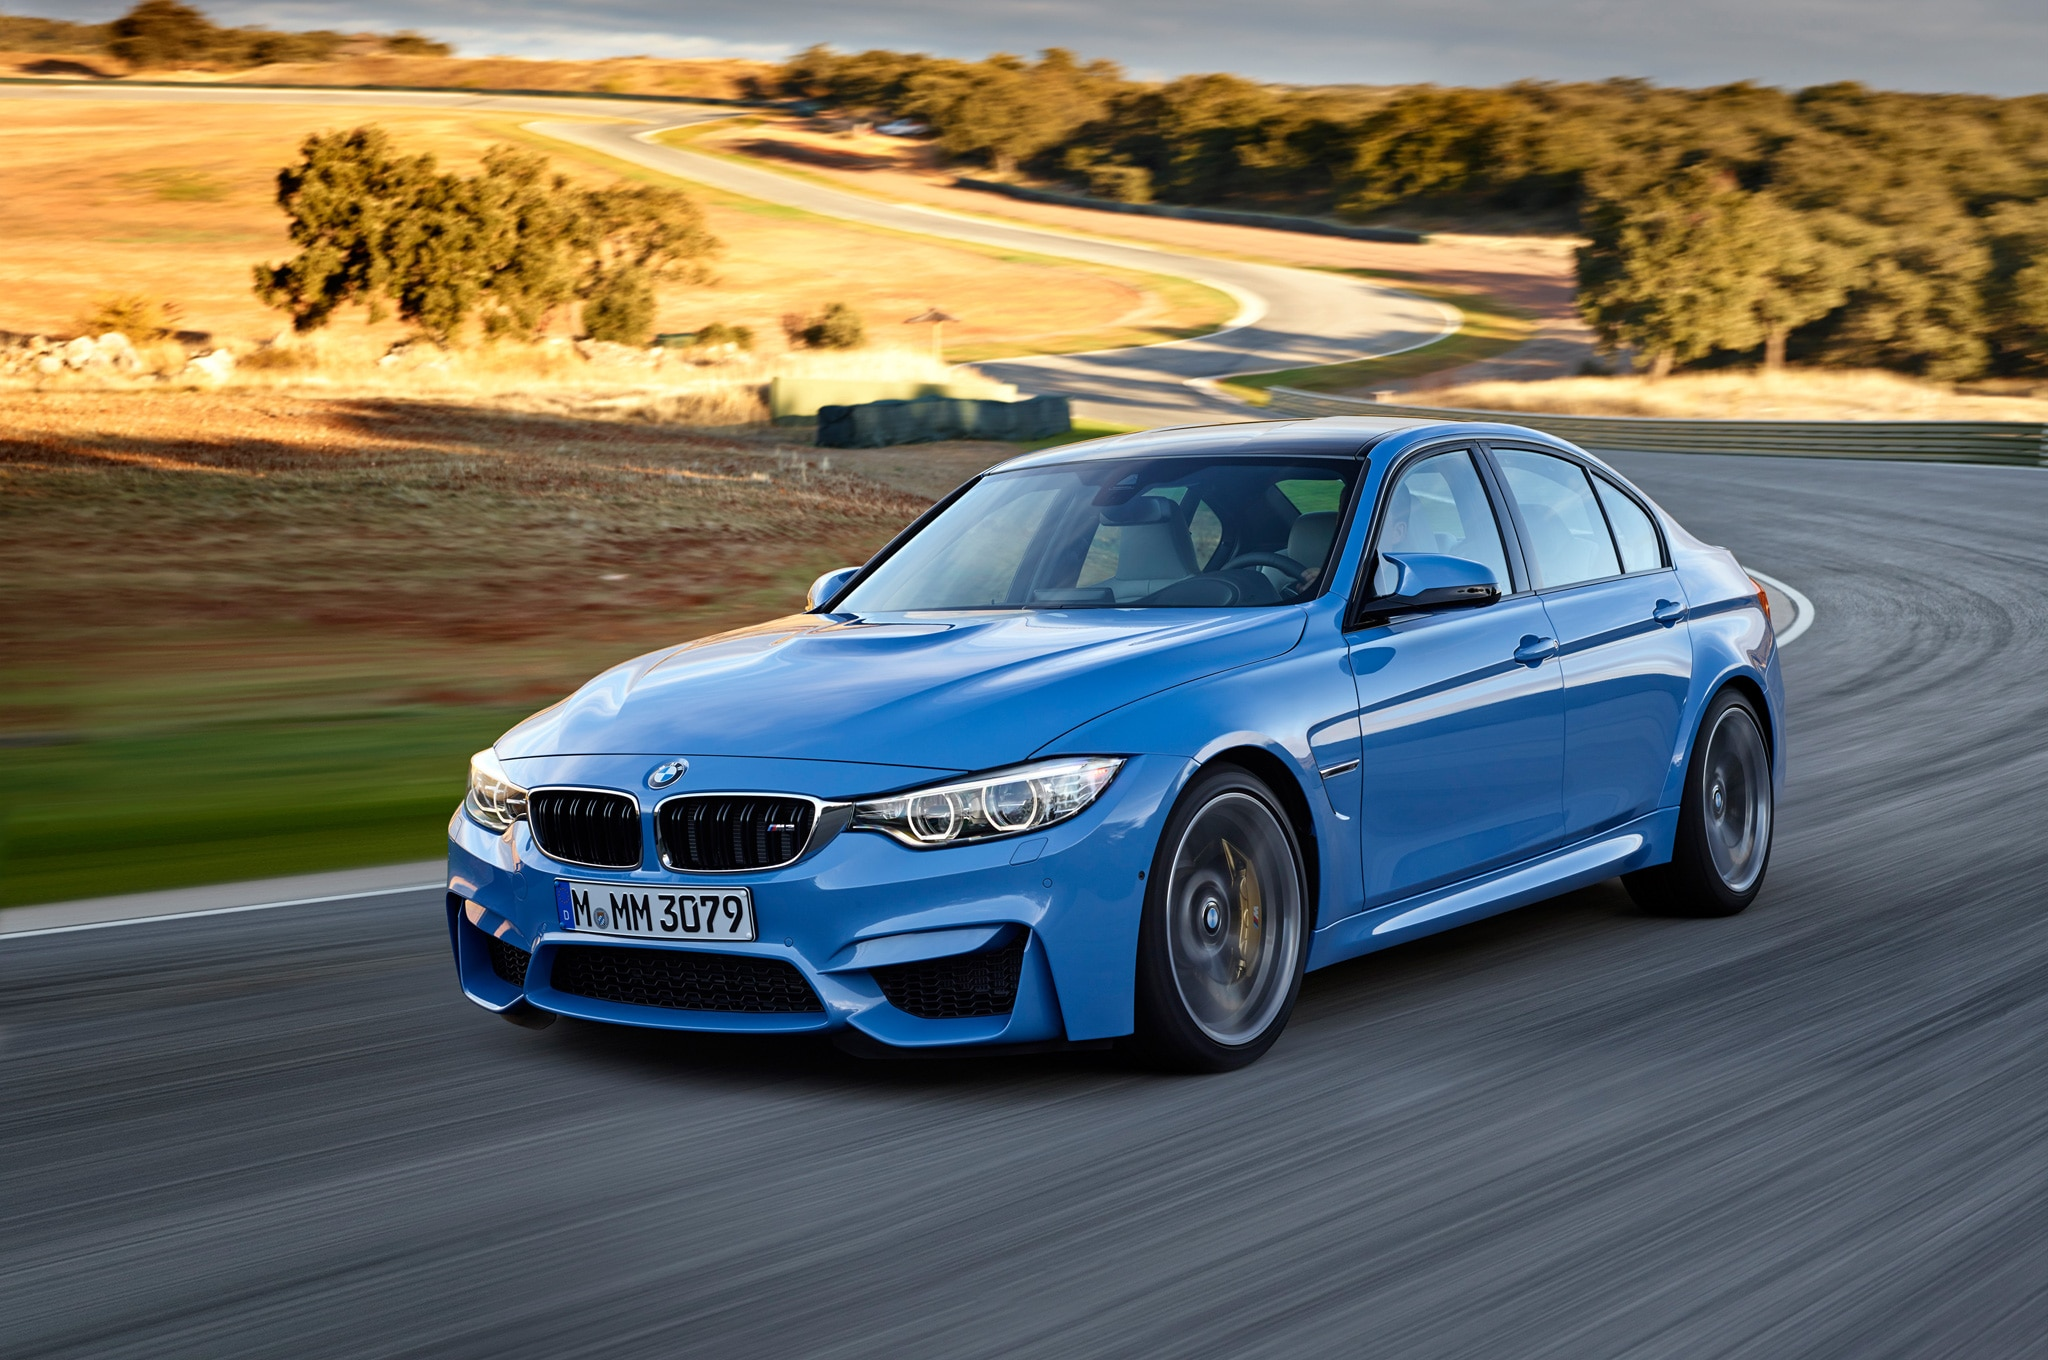 2015 BMW M3 In Motion On Track1